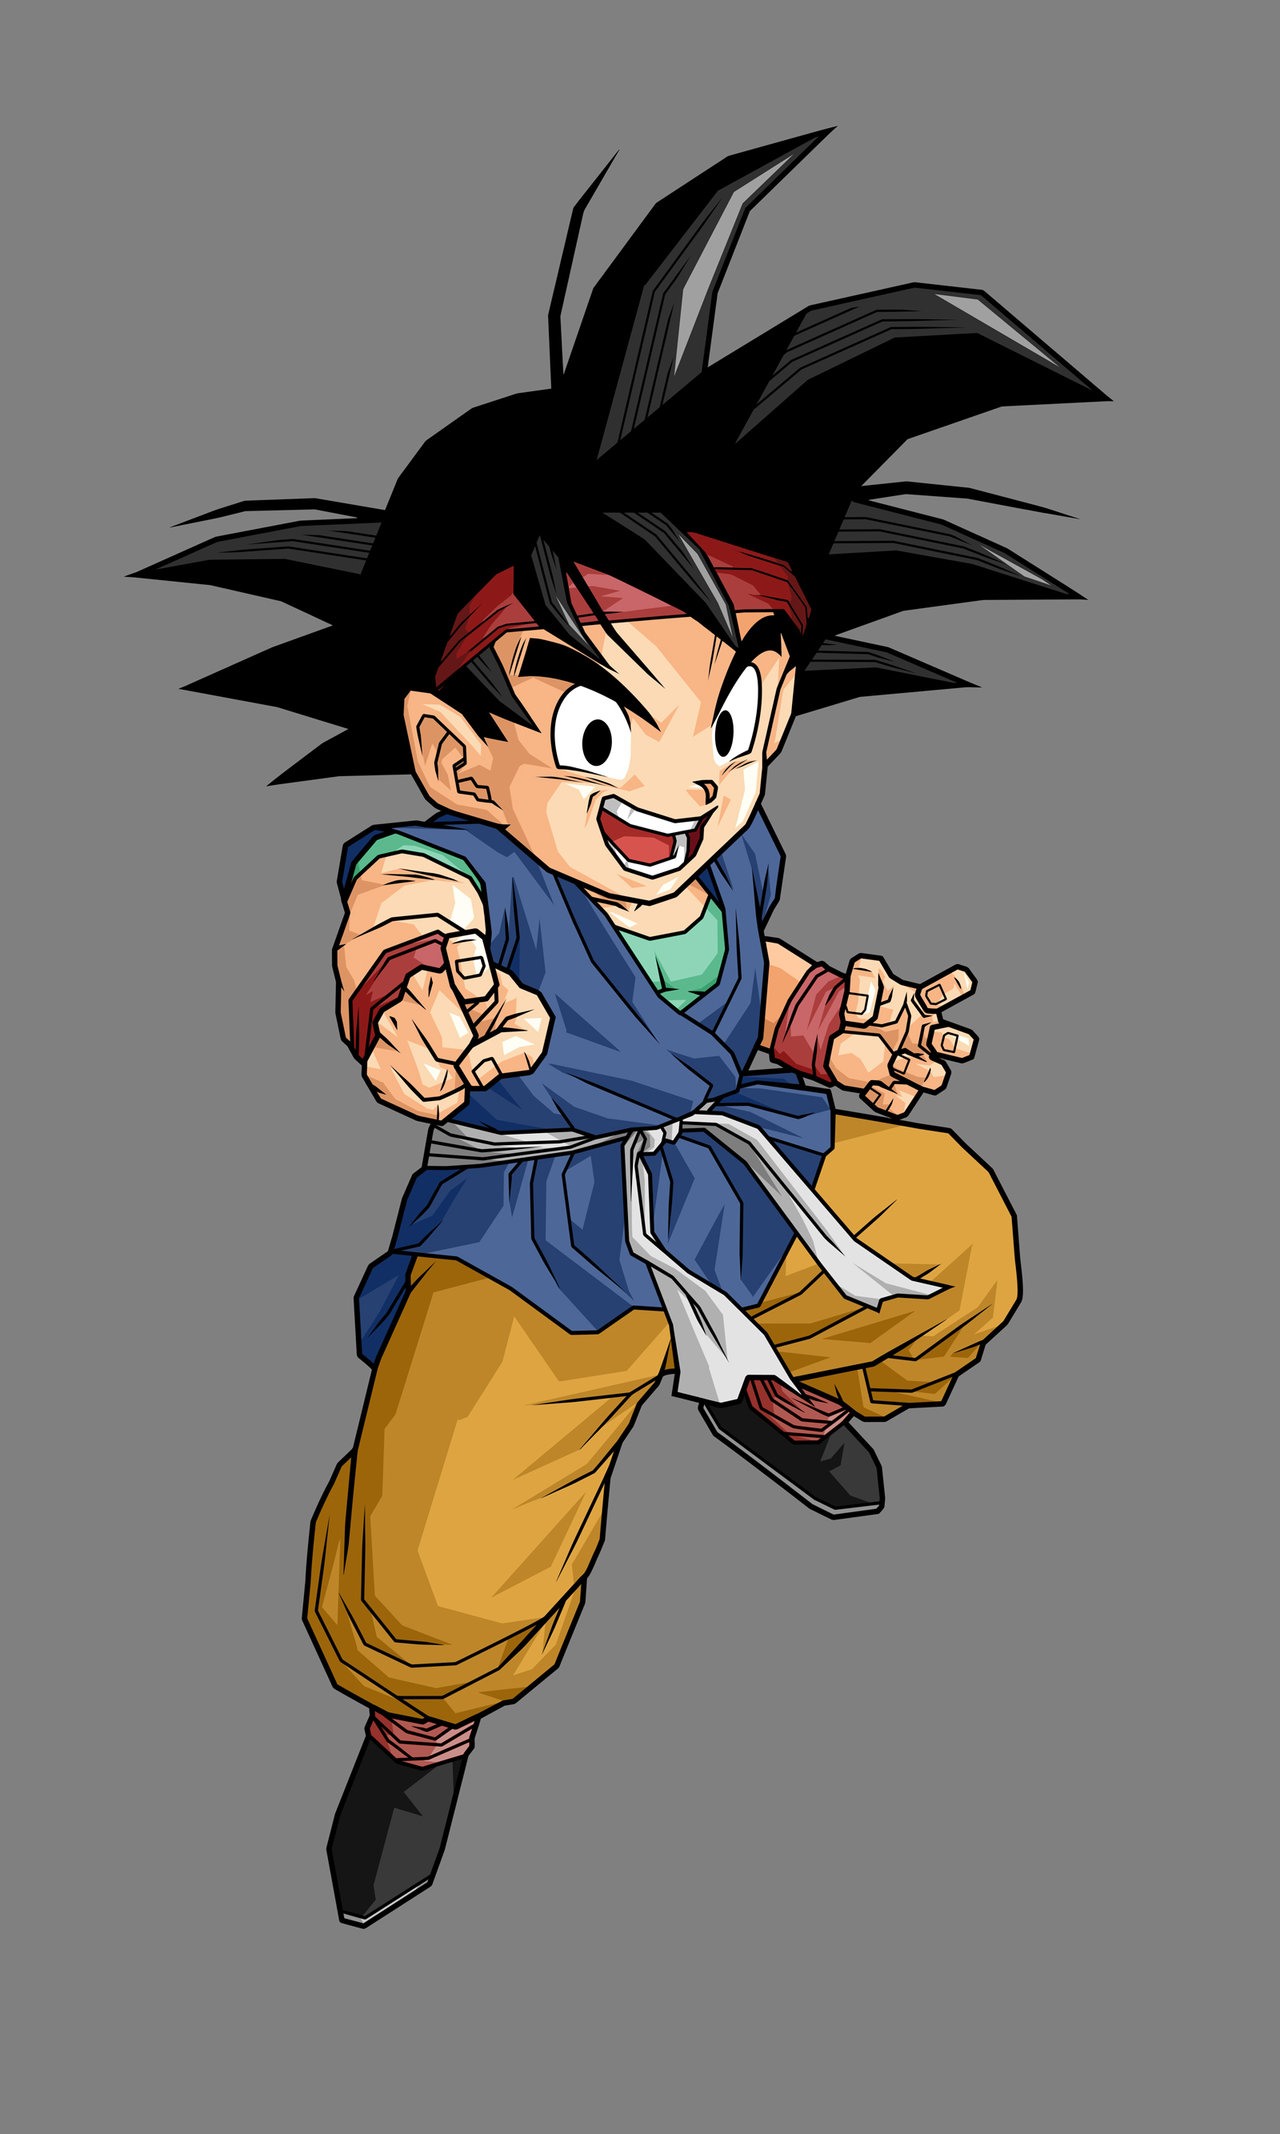 Dragon Ball Gt Goku 189 Hd Wallpapers in Cartoons   Imagescicom 1280x2134